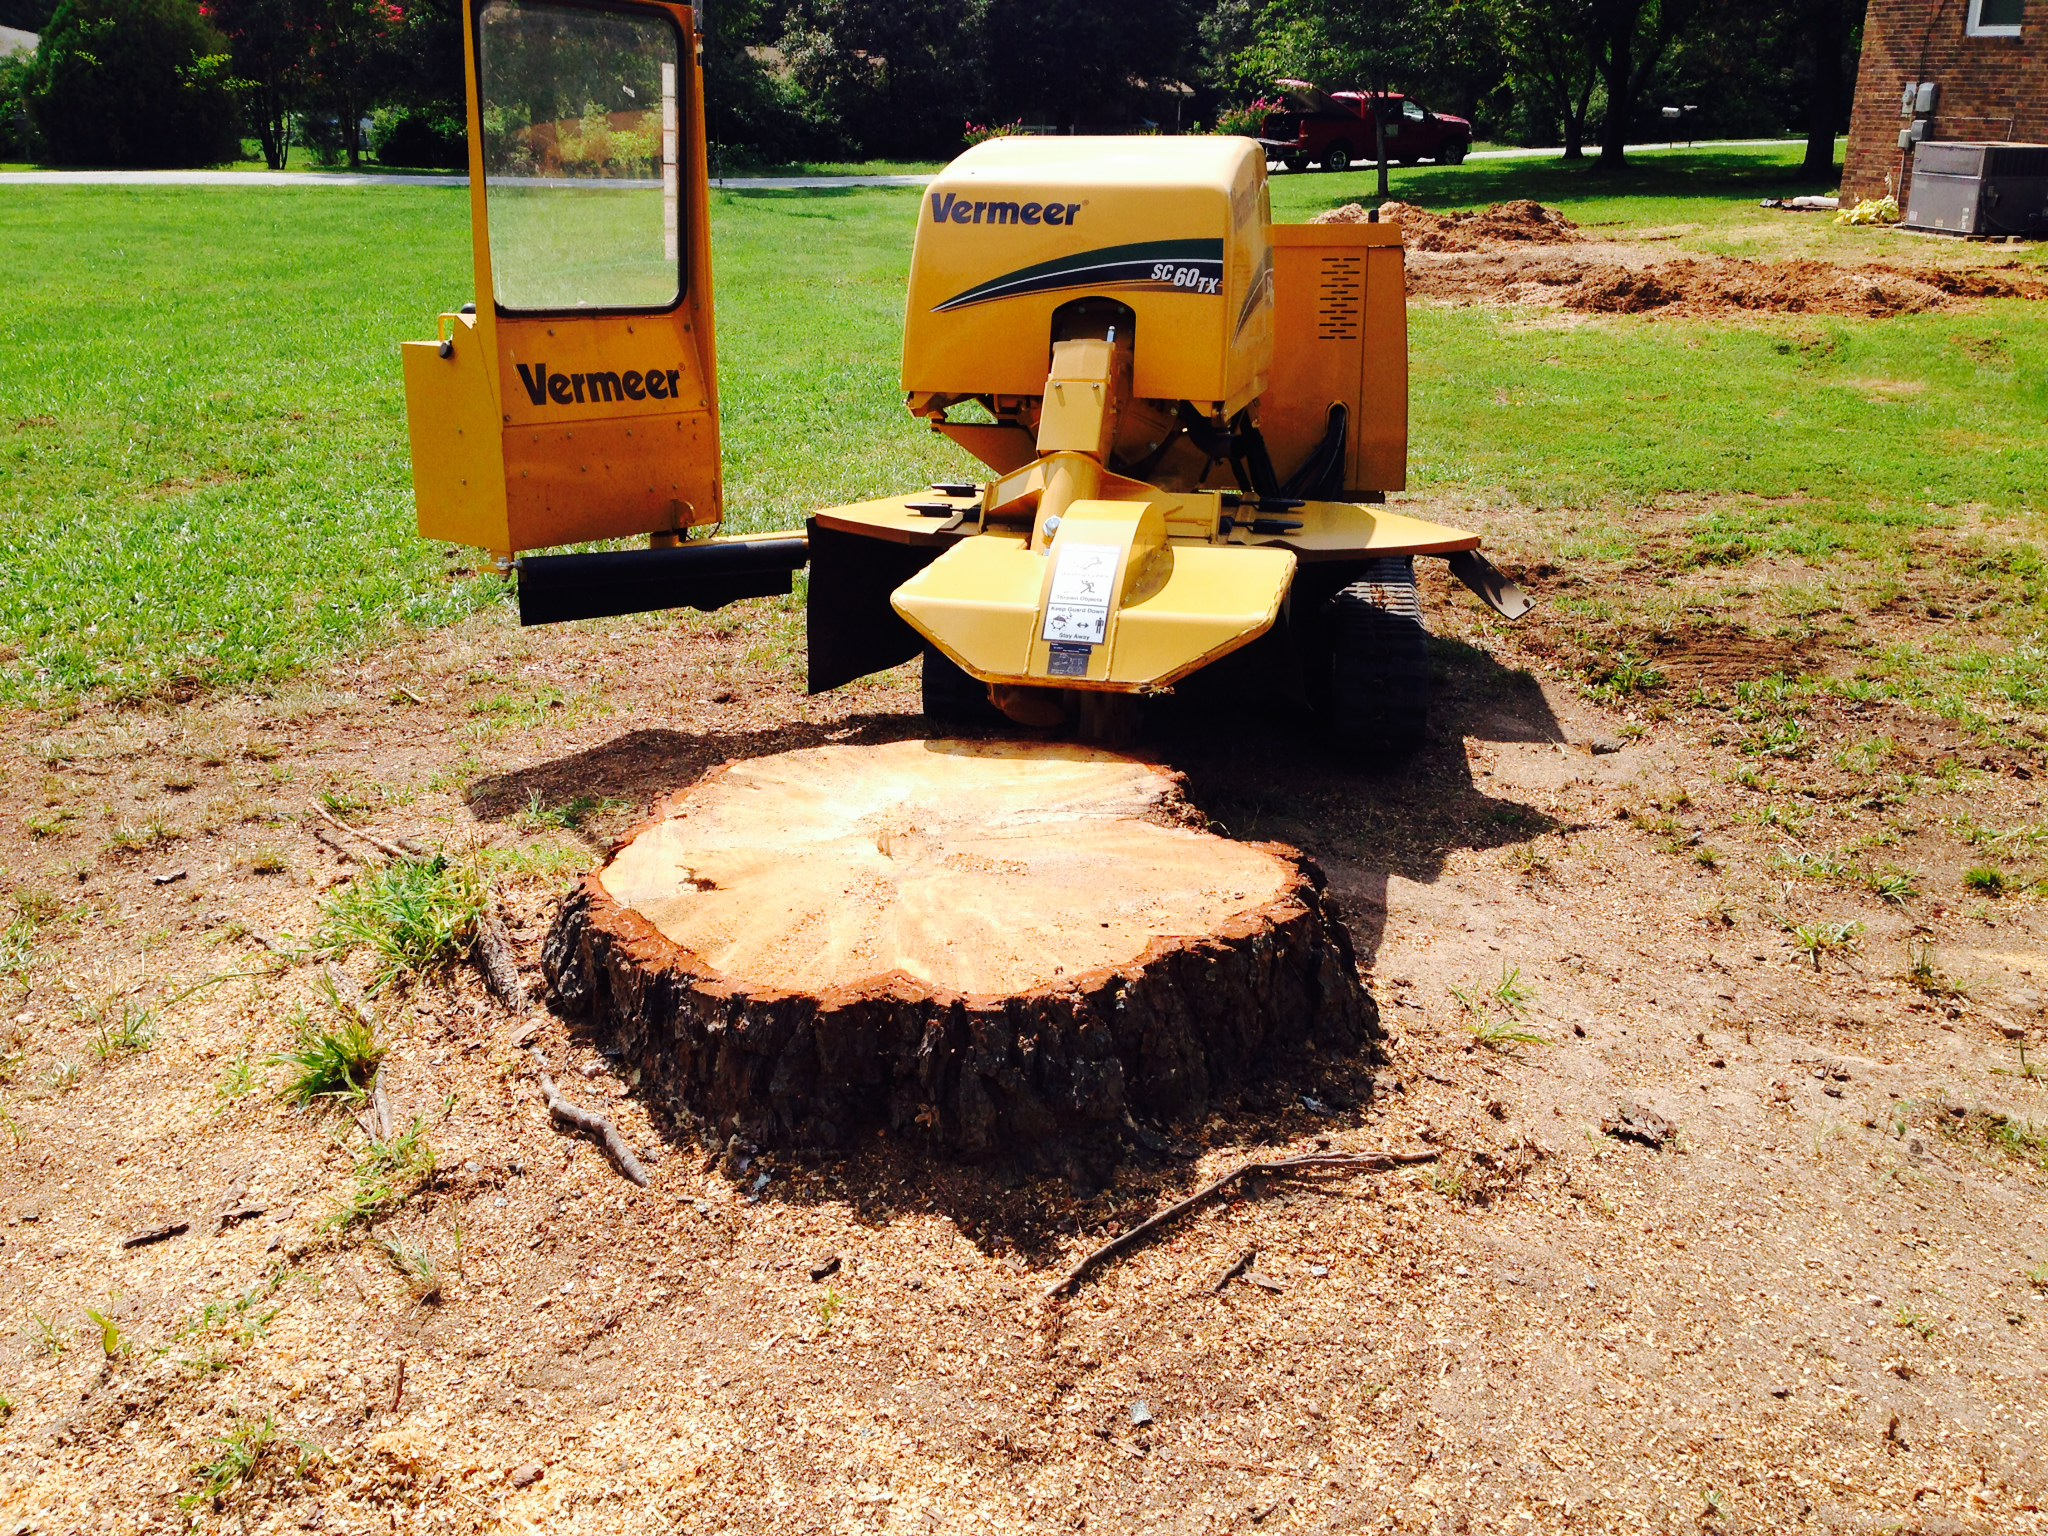 How To Refinish Old Kitchen Cabinets Tree Stump Removal Methods Amp Tips Homeadvisor